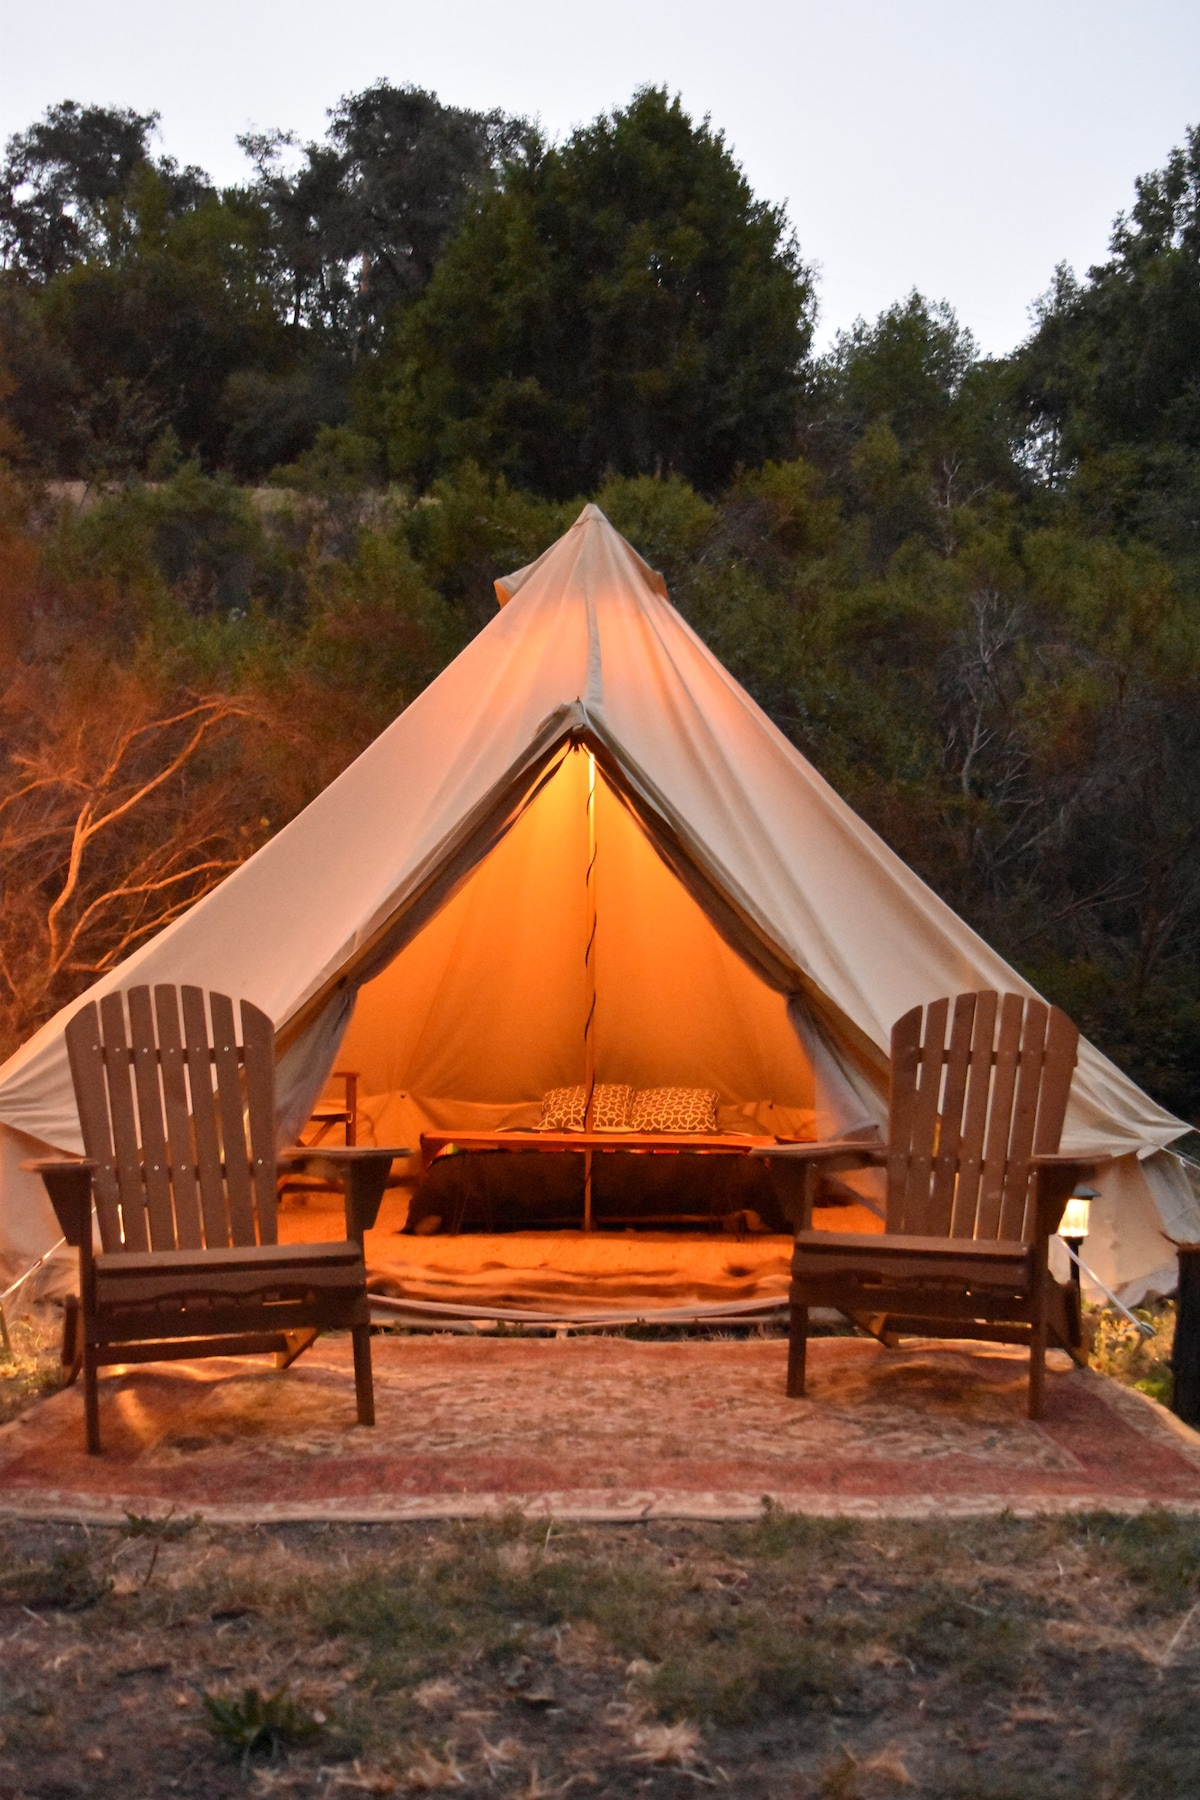 The most romantic tent on earth! & Private Luxury Glamping Tent Designer Decorated - Tents for Rent ...